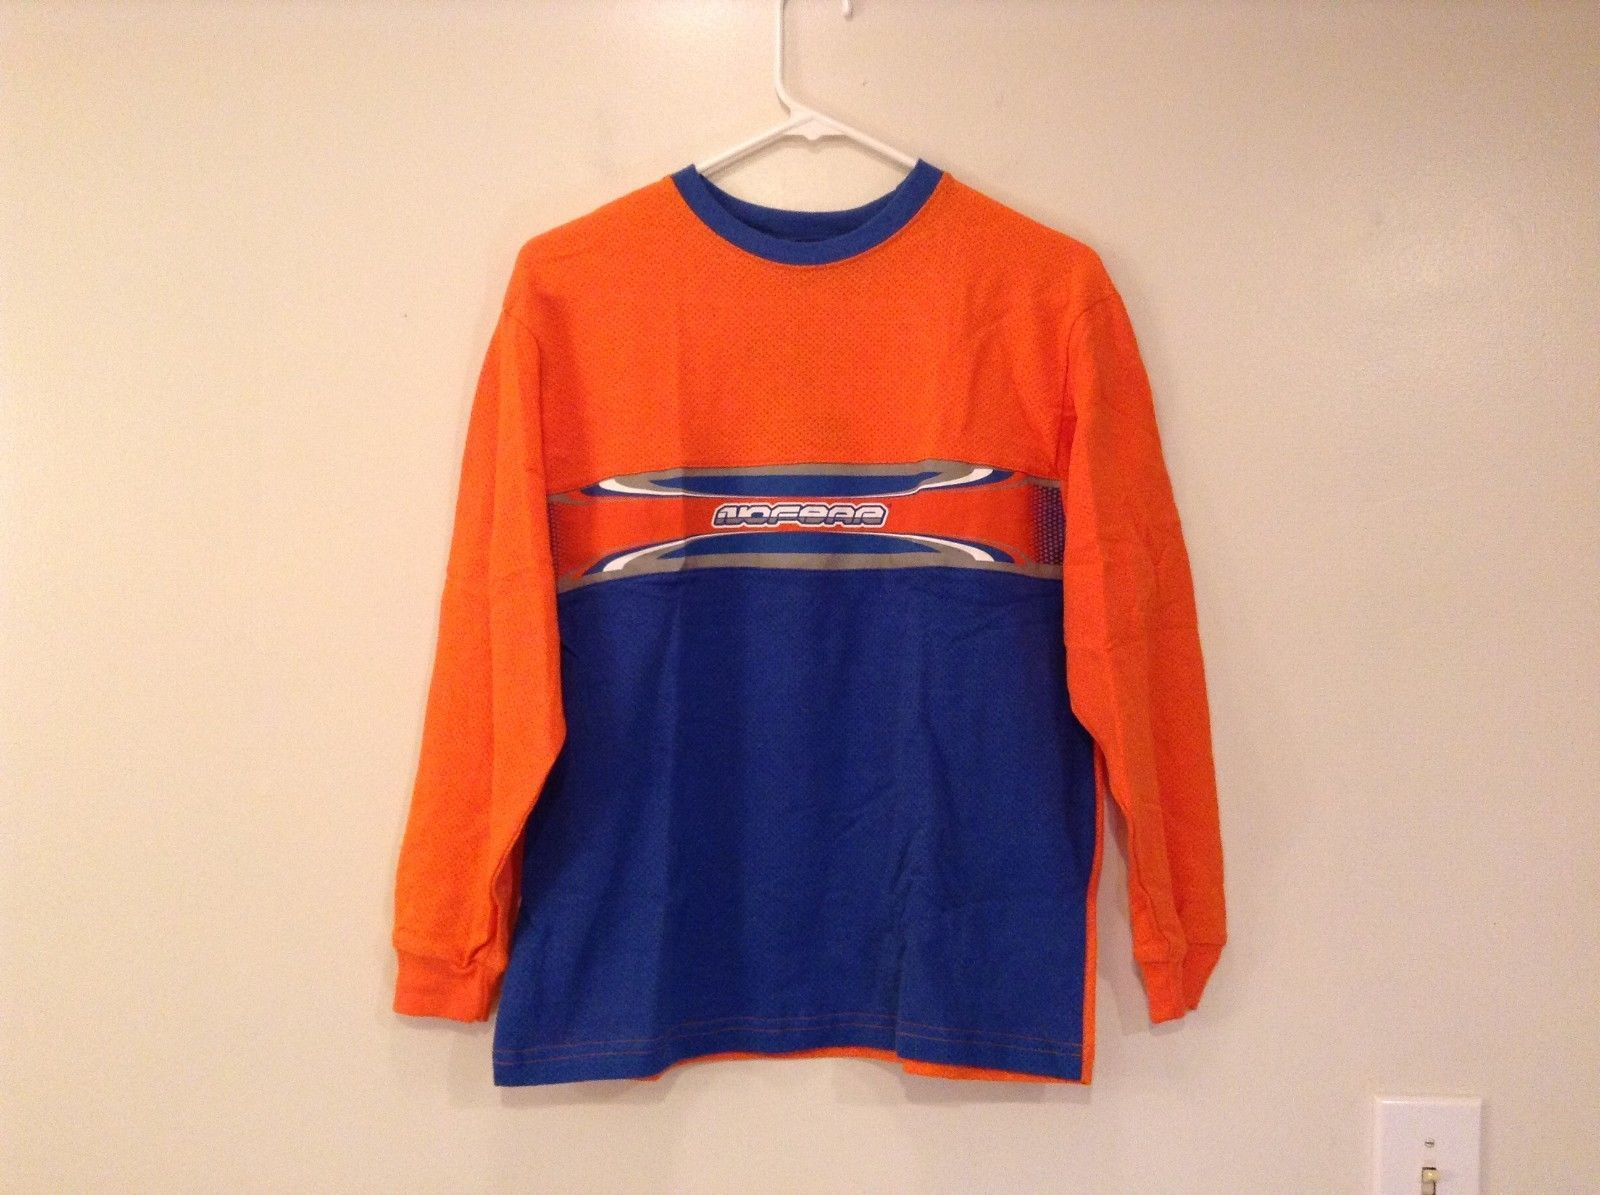 boy's sports jersey No Fear NEW w tags orange and blue